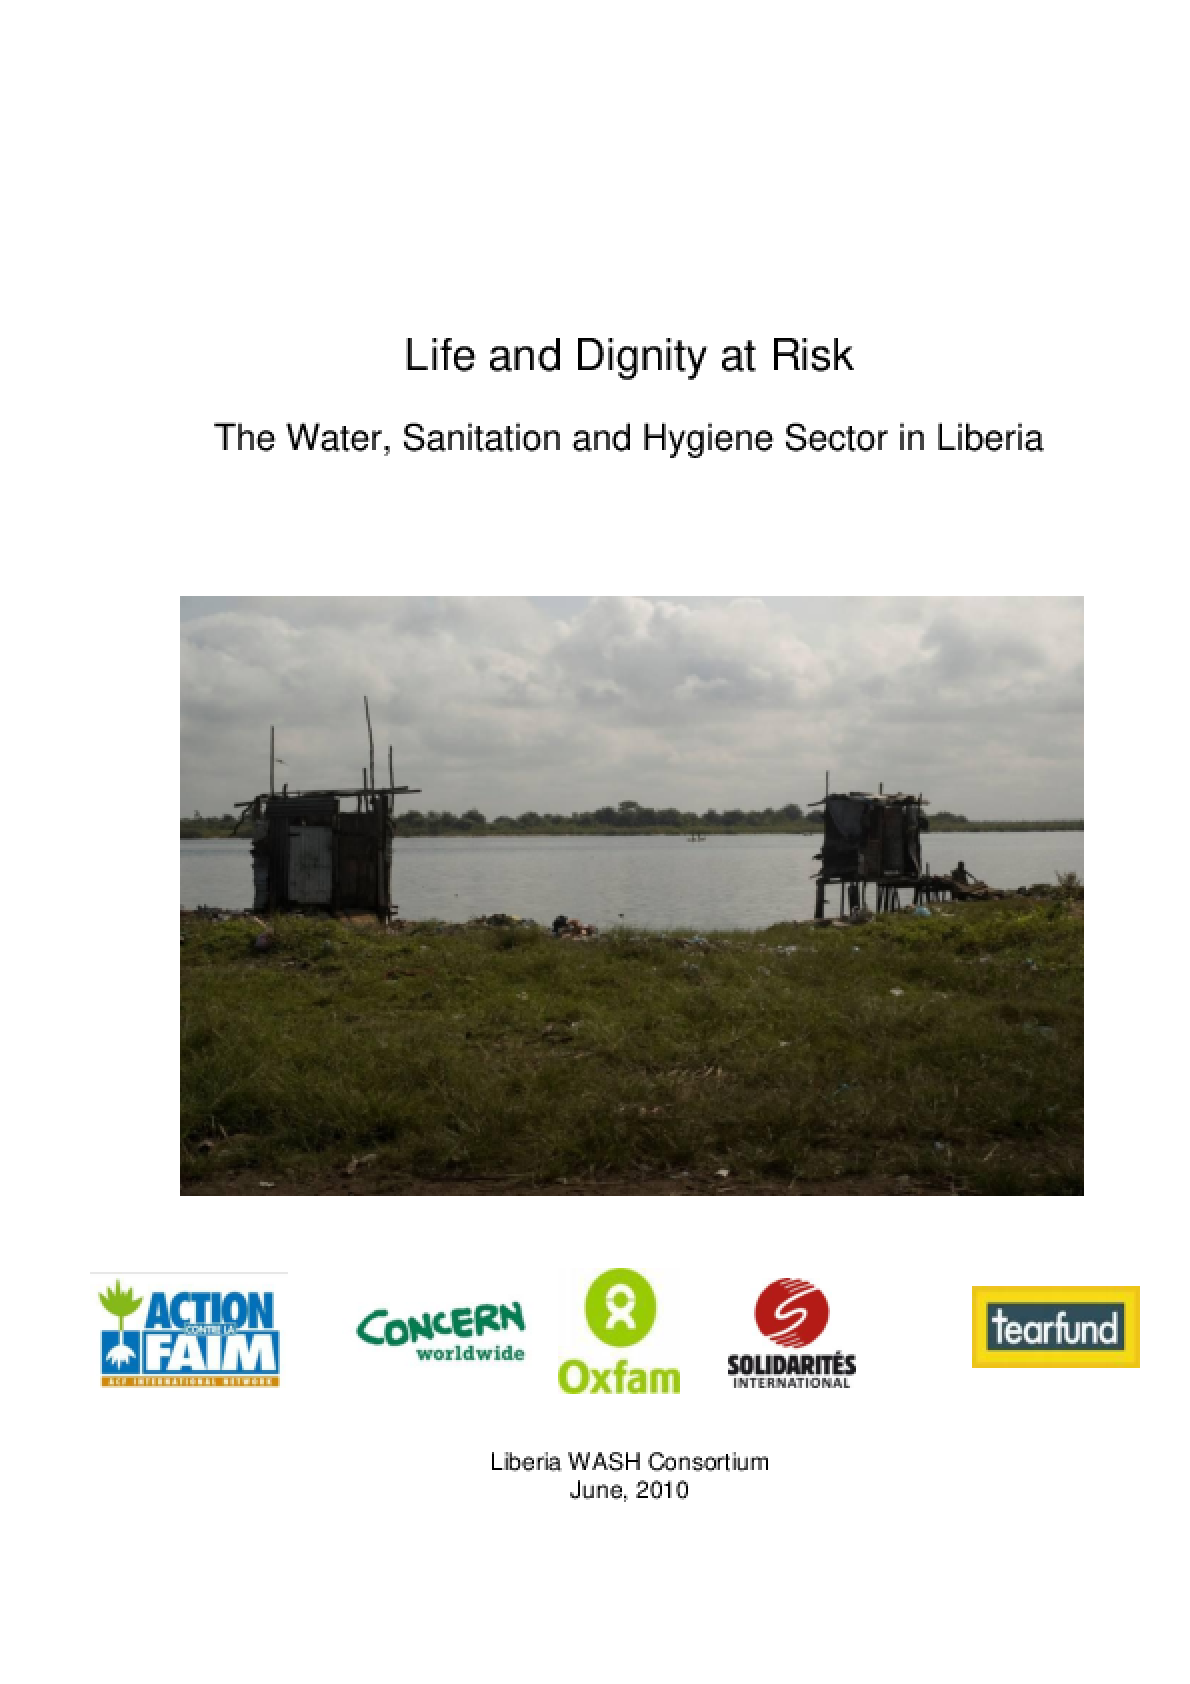 Life and Dignity at Risk: The Water, Sanitation and Hygiene Sector in Liberia